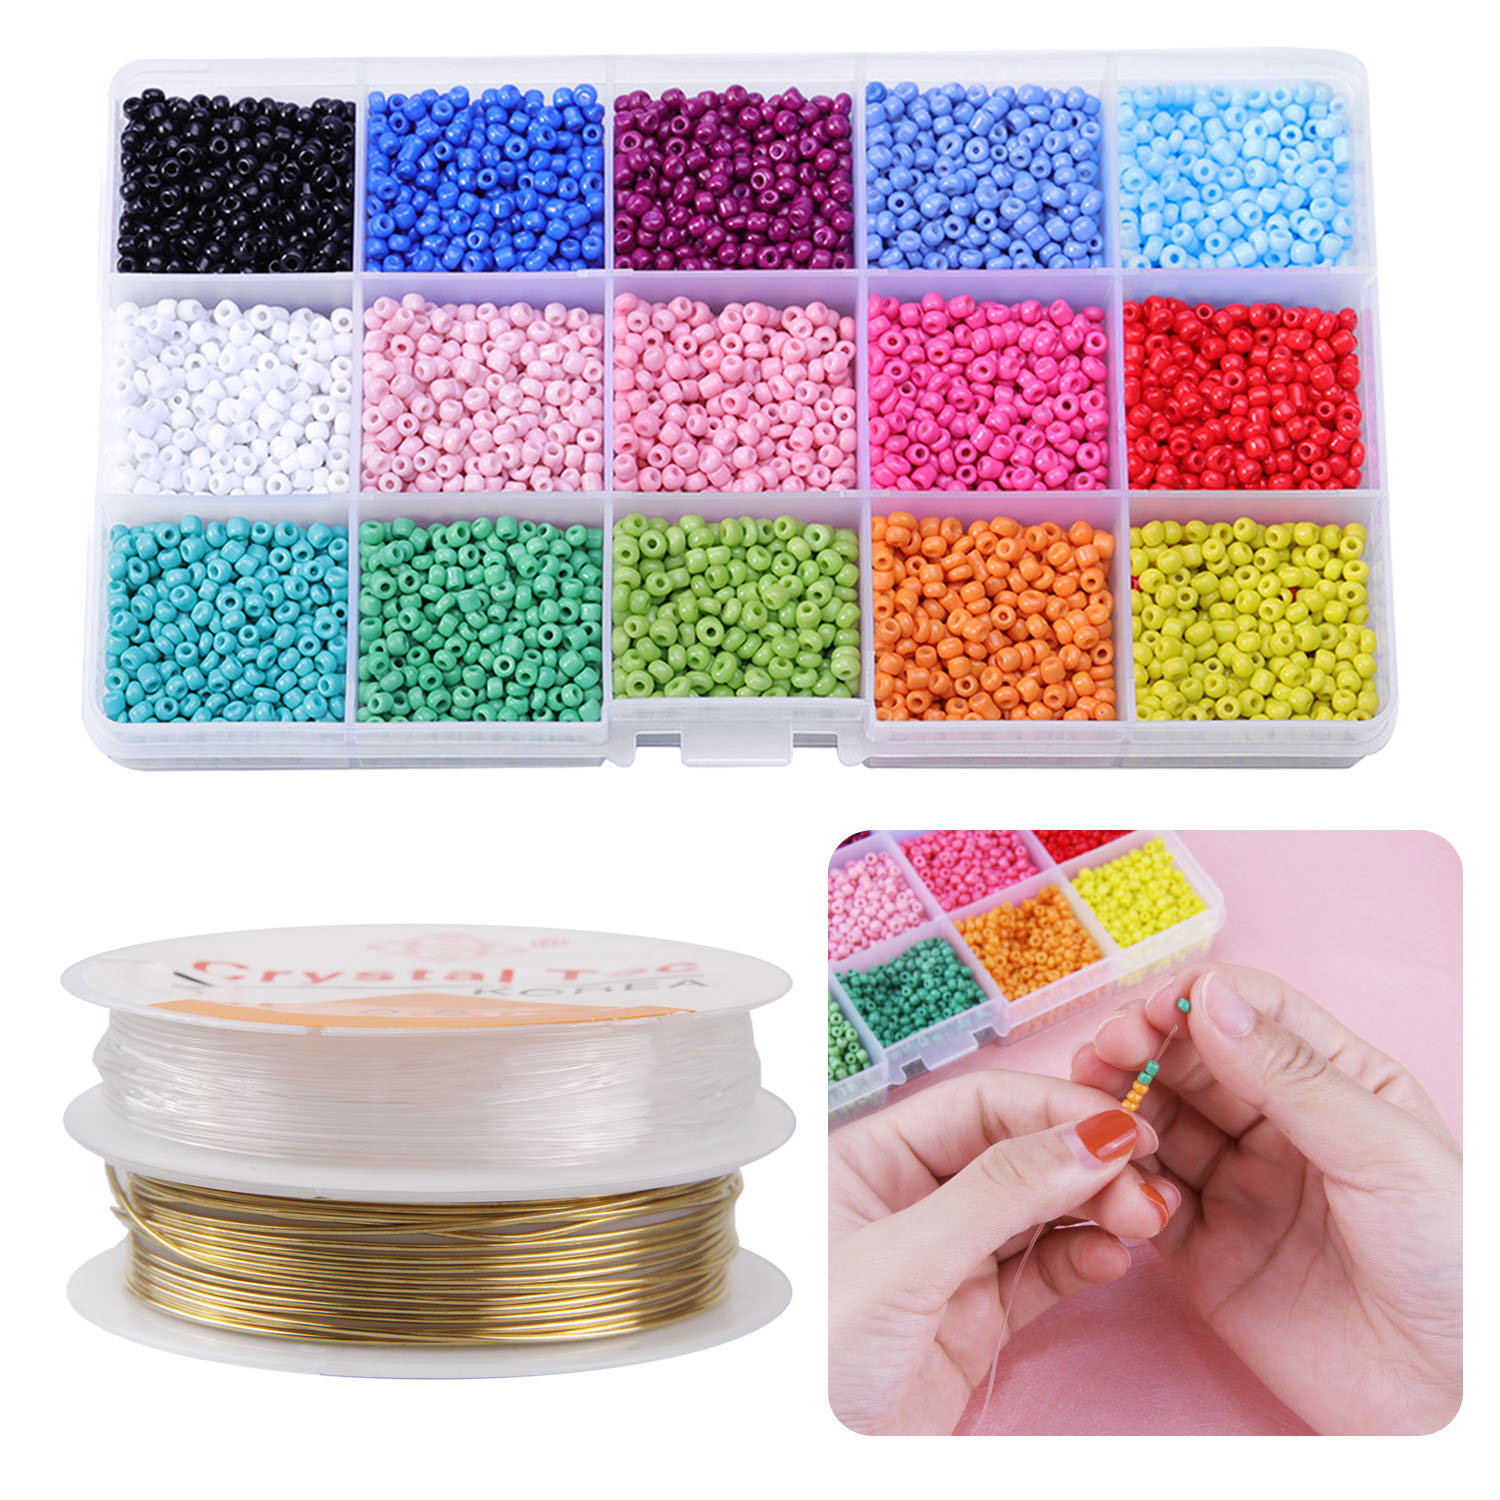 Kids Mini 3mm Glass Beads Colorful DIY  Stringing Threading Bead Necklaces Bracelets Jewelry Making Beaded Game Accessory Toy